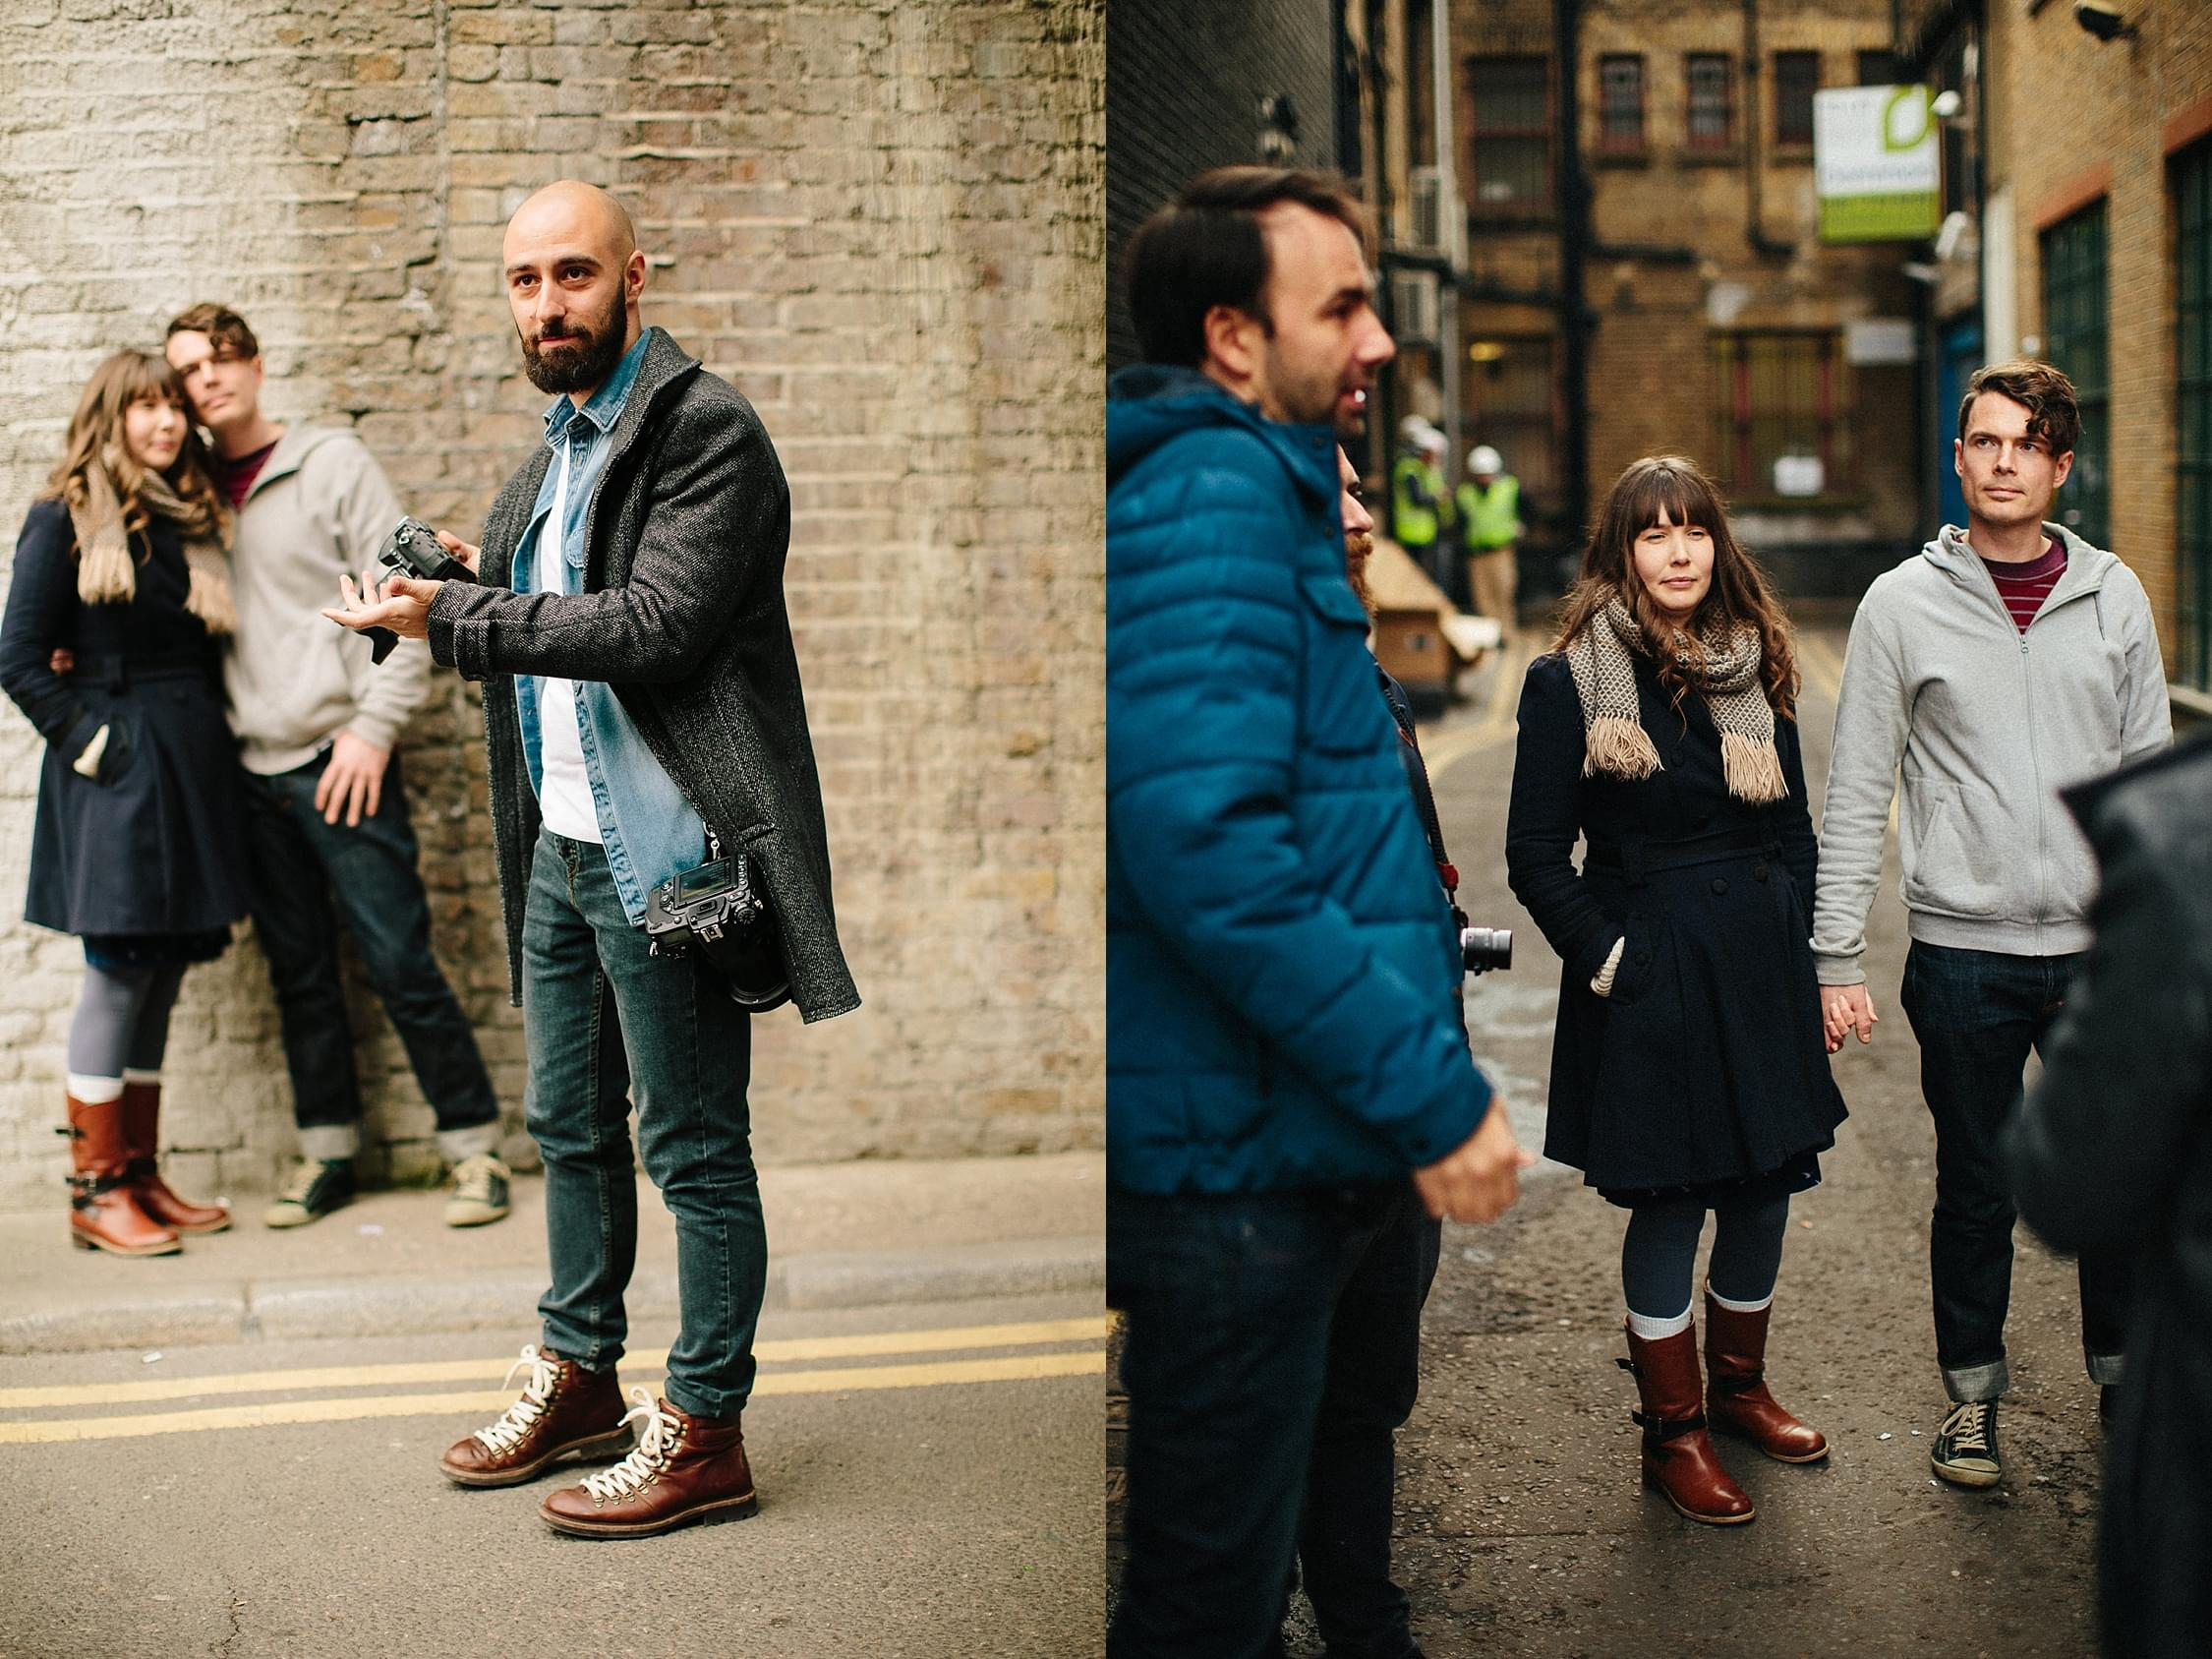 share-the-journey-london-wedding-photography-workshop-15